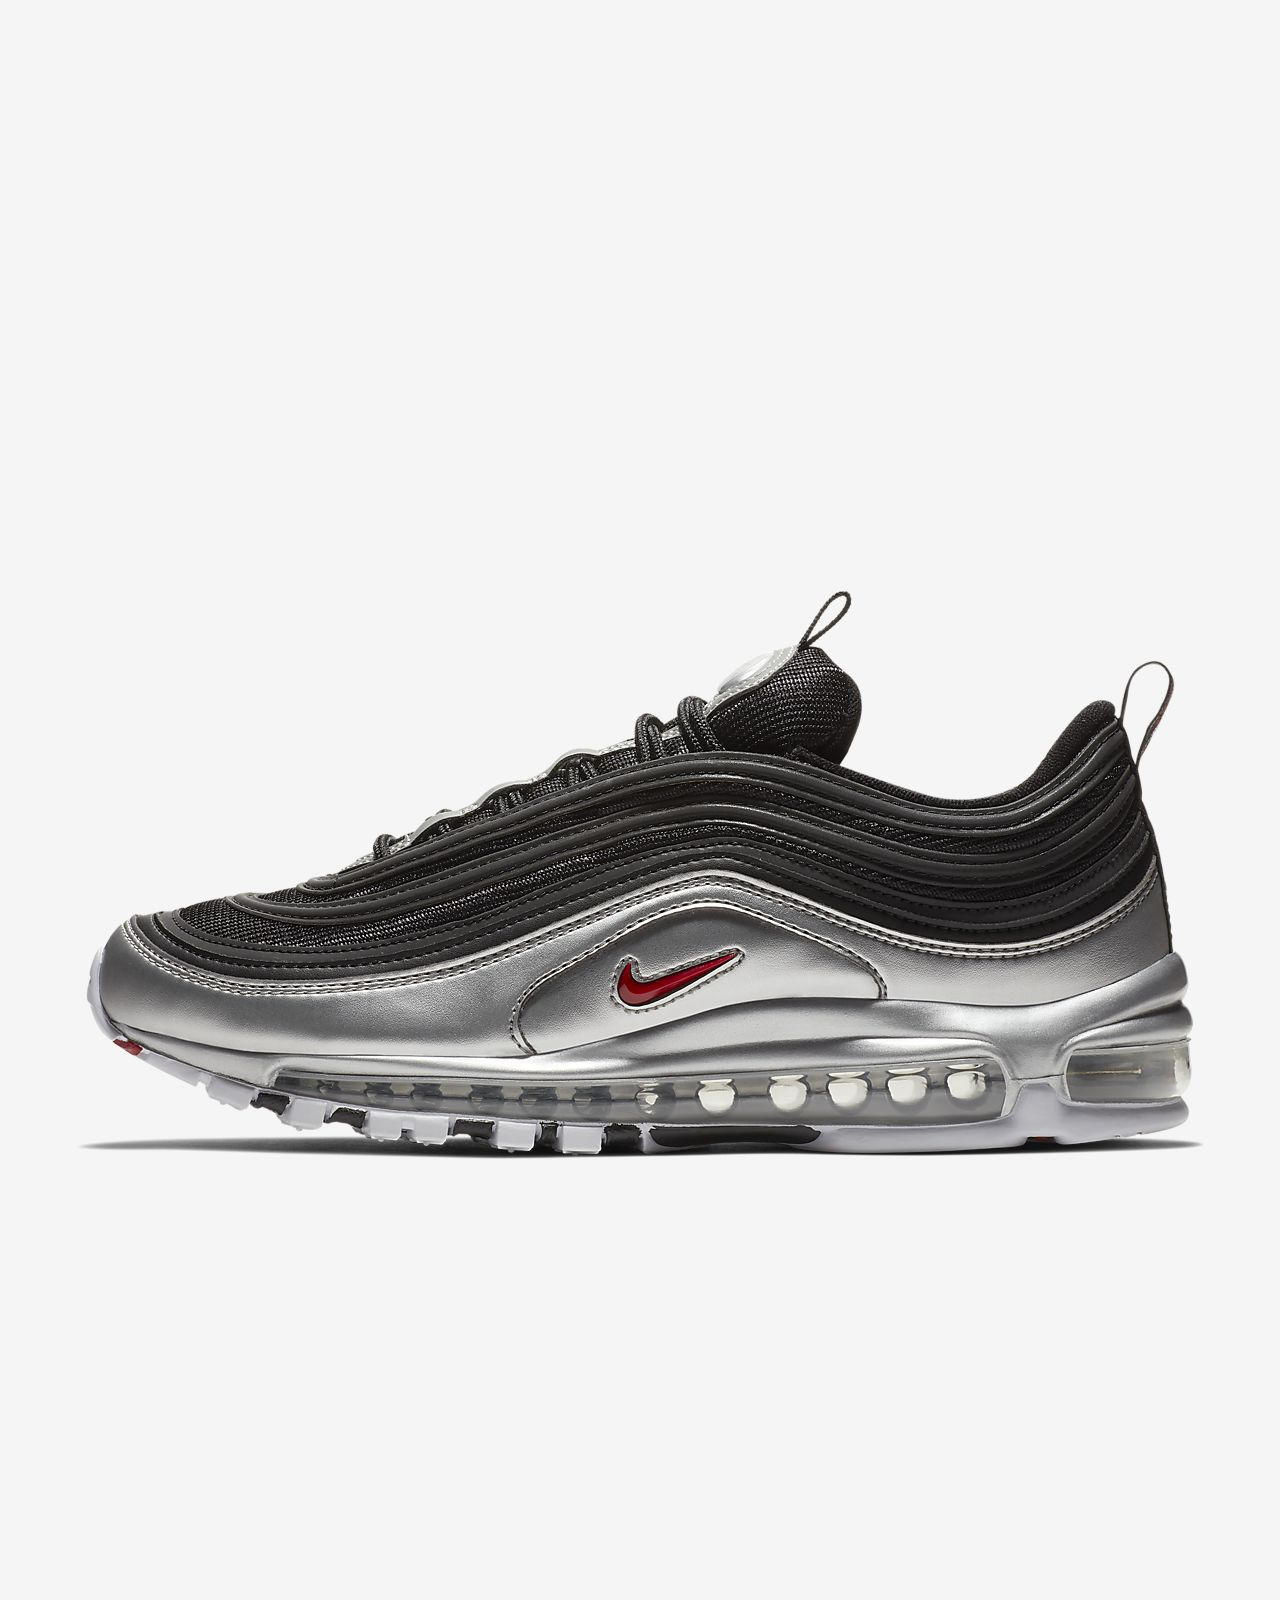 newest 0ee6a 20a91 ... Chaussure Nike Air Max 97 QS pour Homme